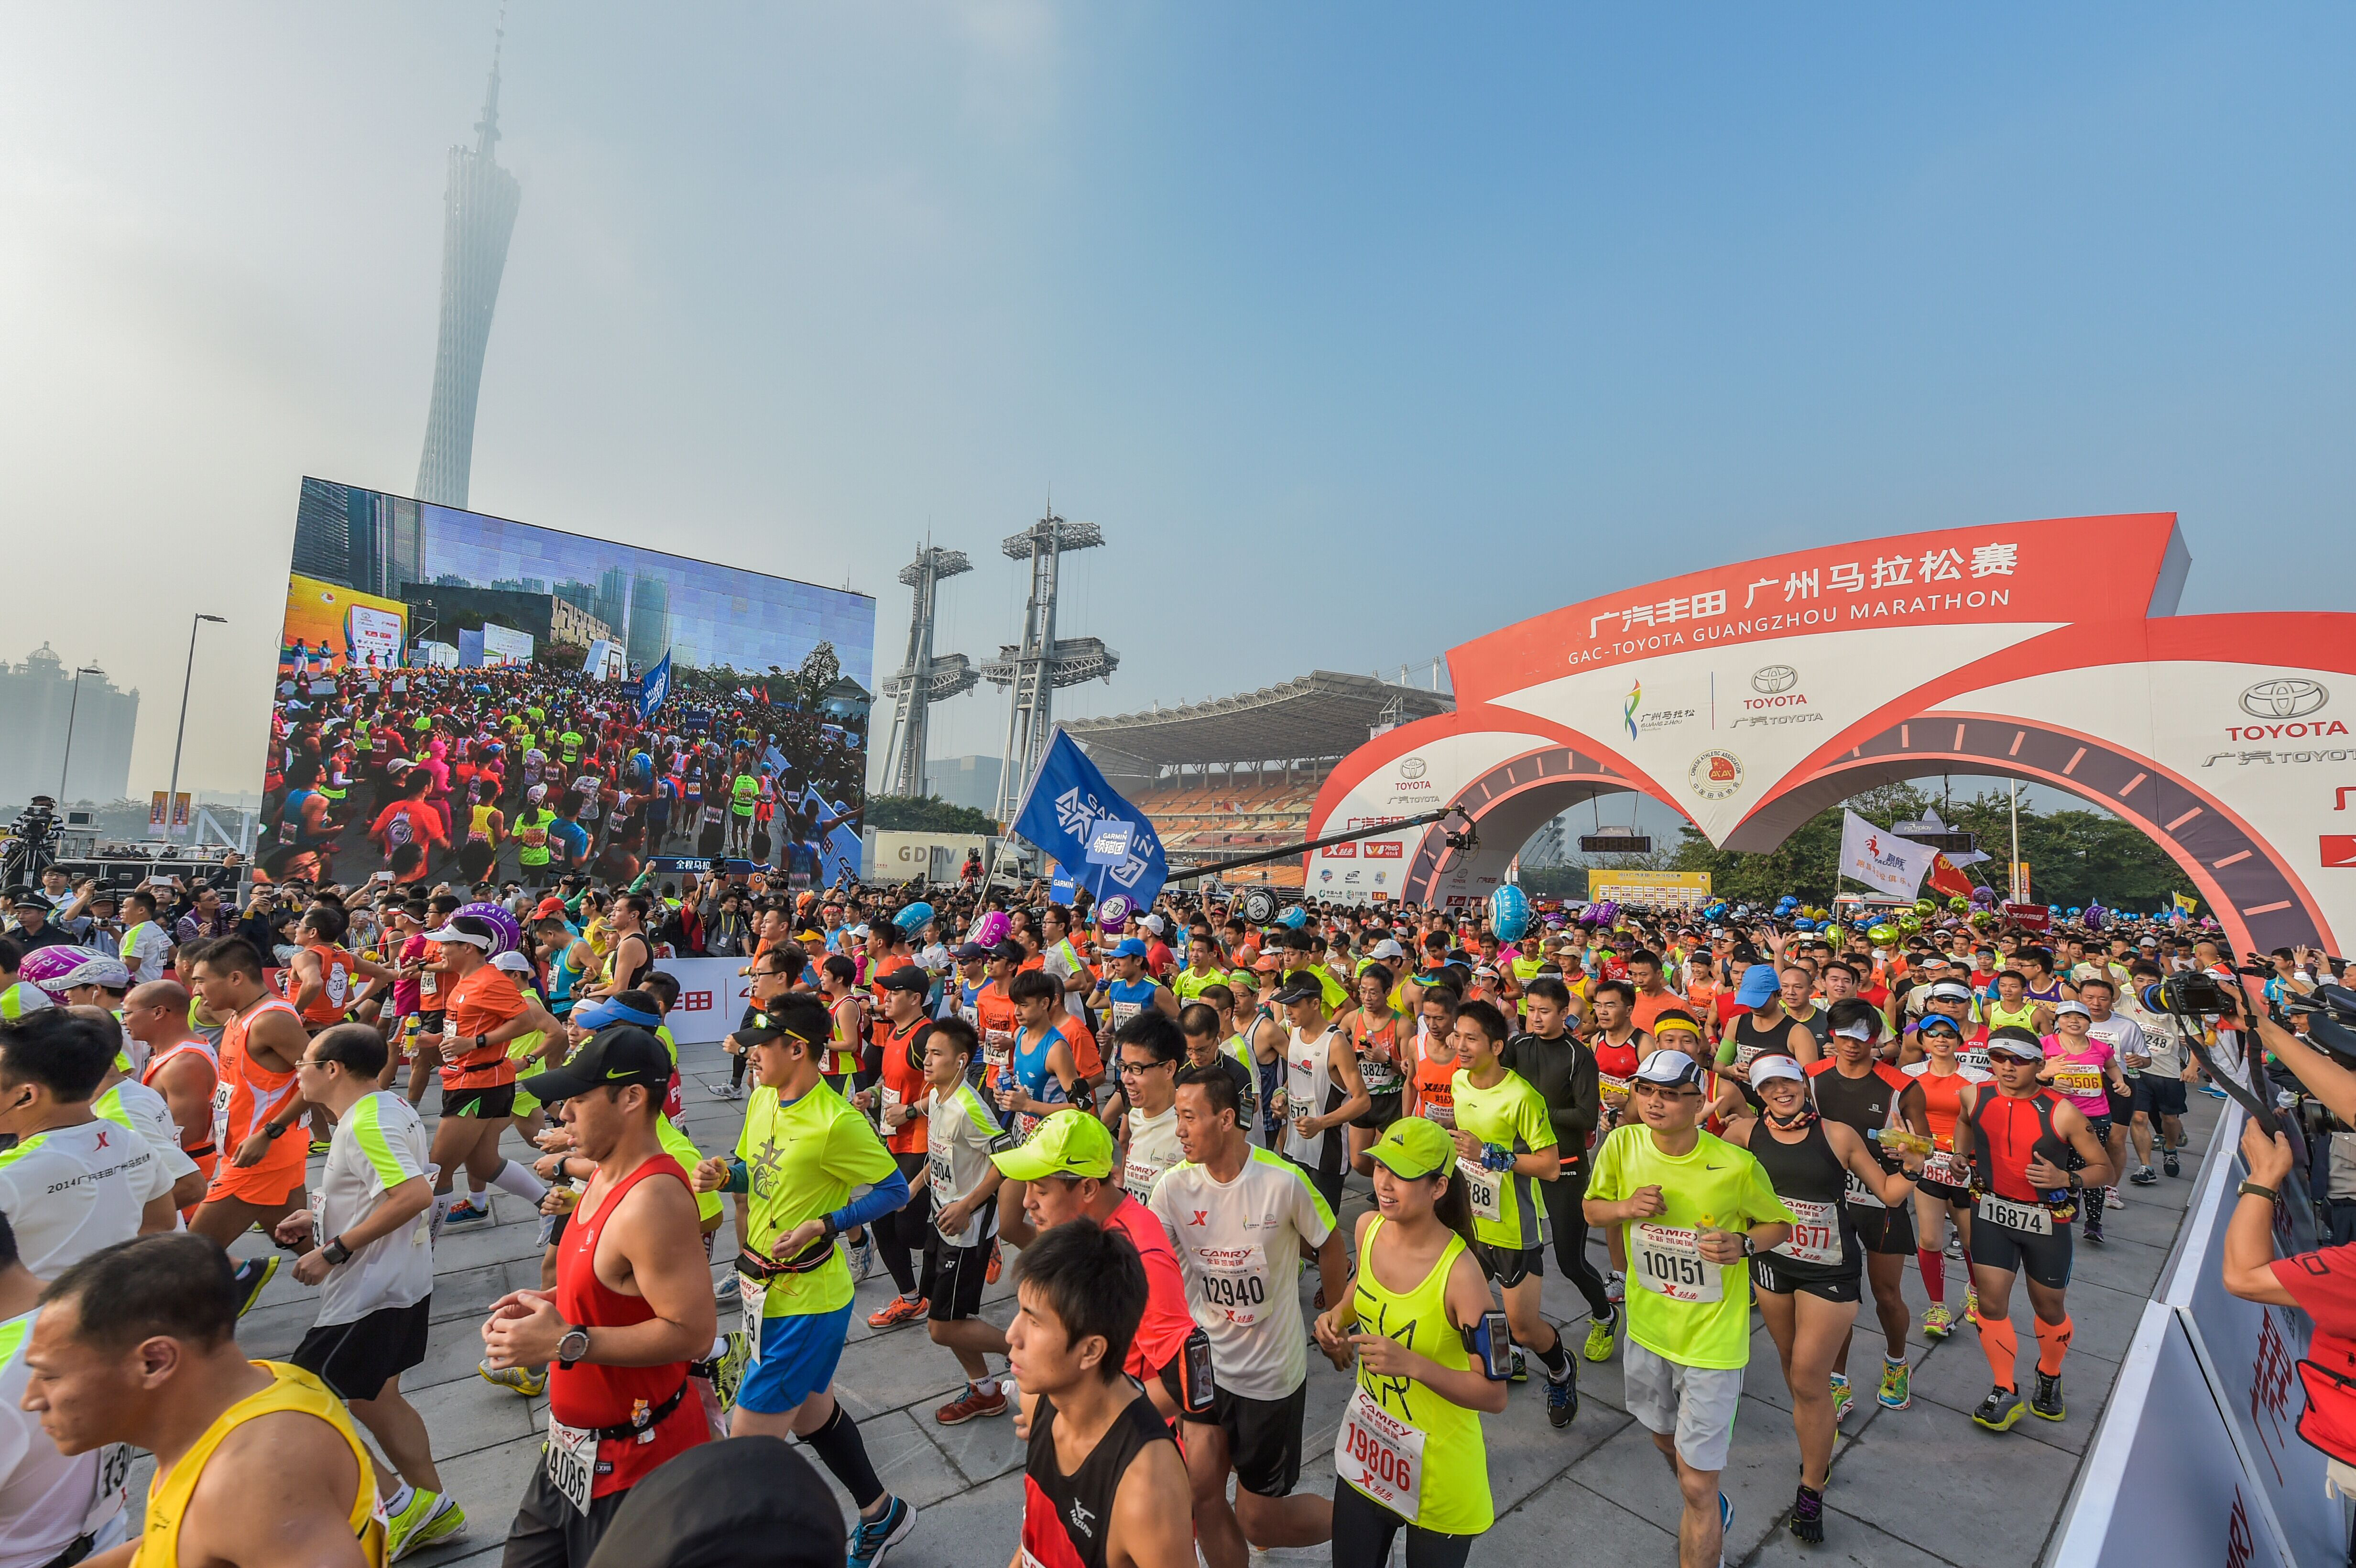 A team of 160 COVID-19 fighters are set to run 2020 Guangzhou Marathon